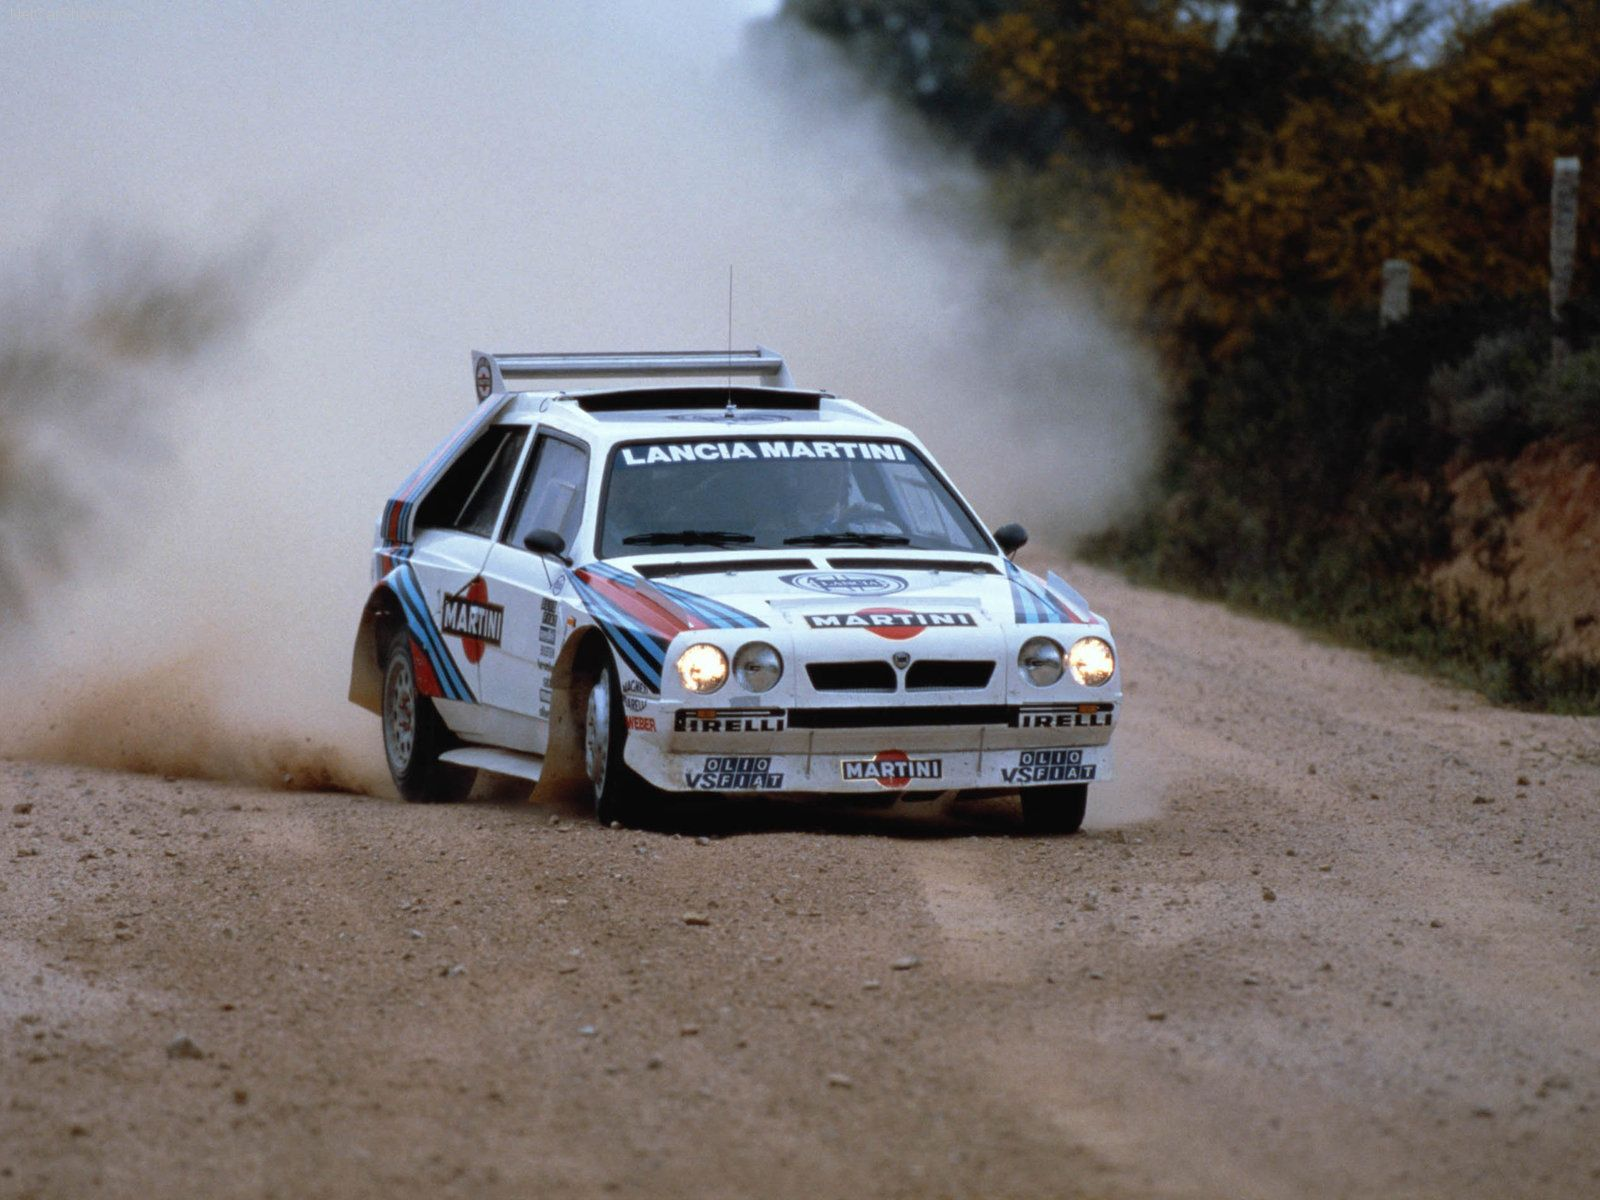 Nothing beats the old Lancia rally cars. | &CARS | Pinterest ...